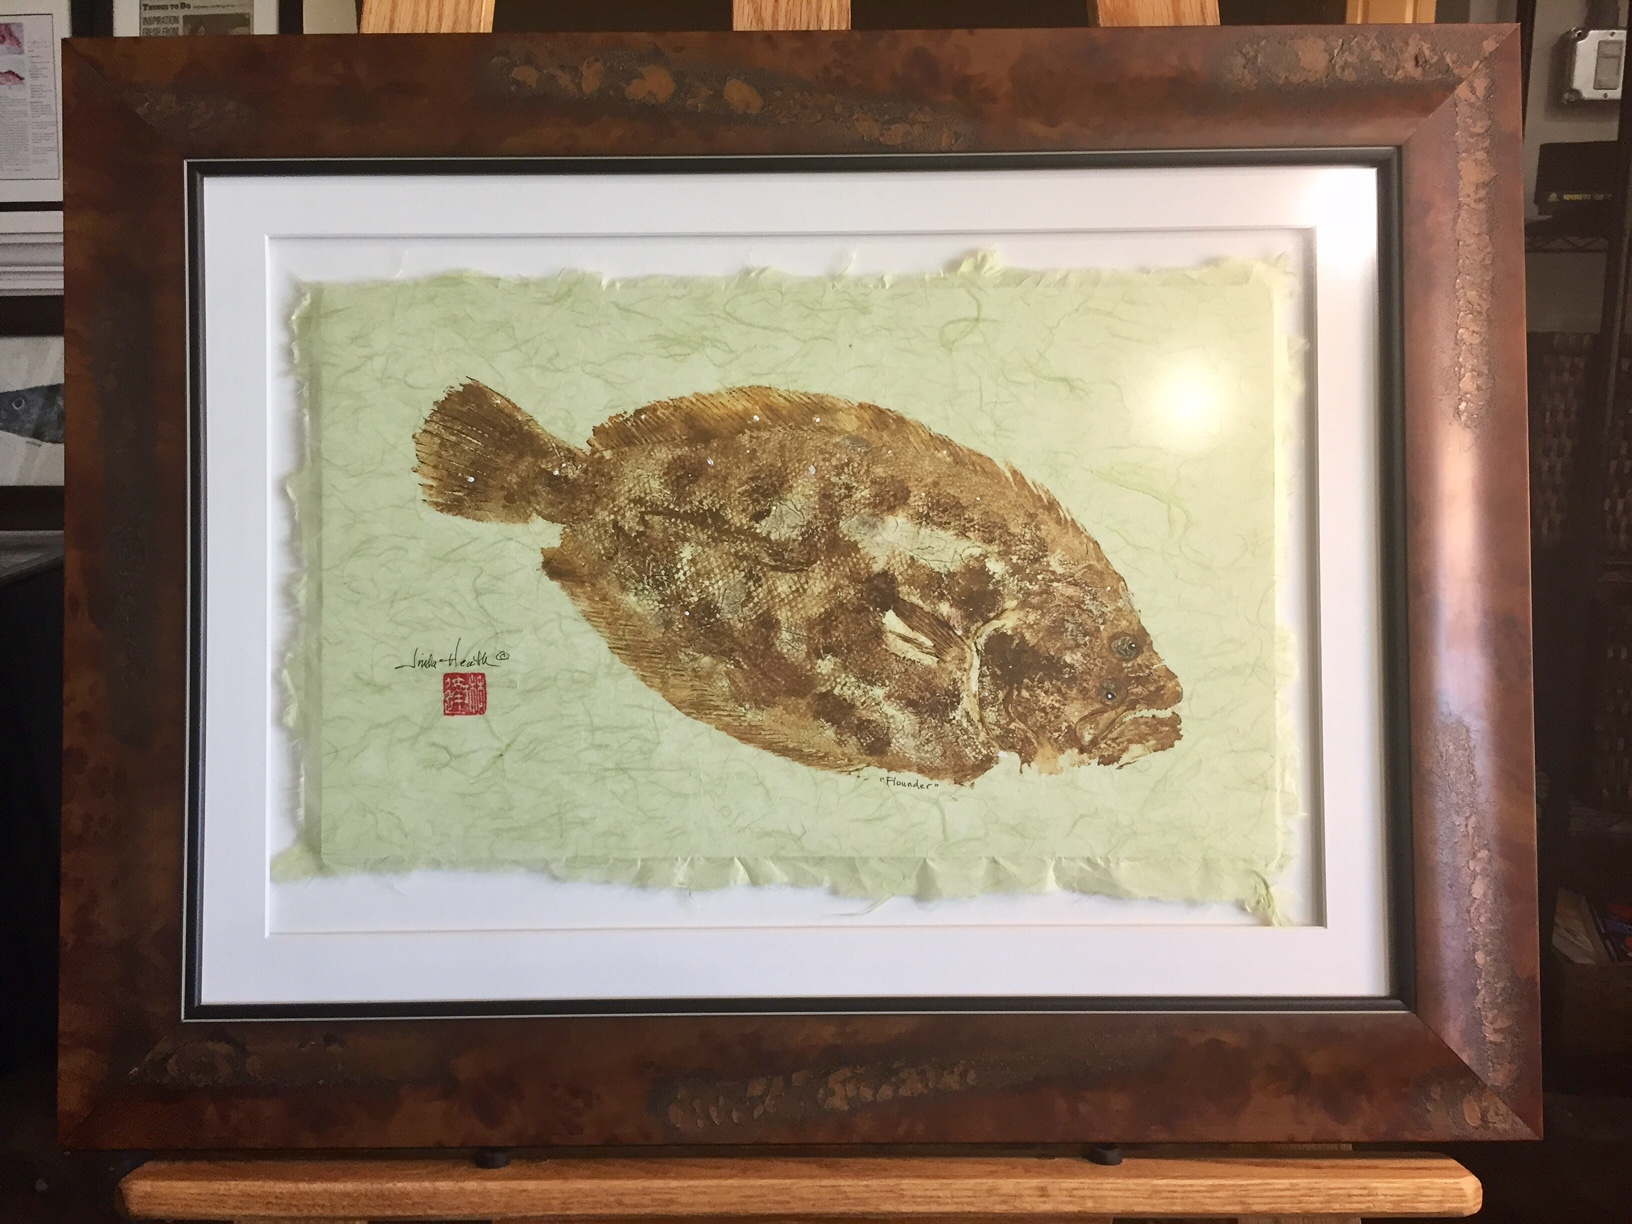 Original-Flounder-by-Linda-Heath-1024x768